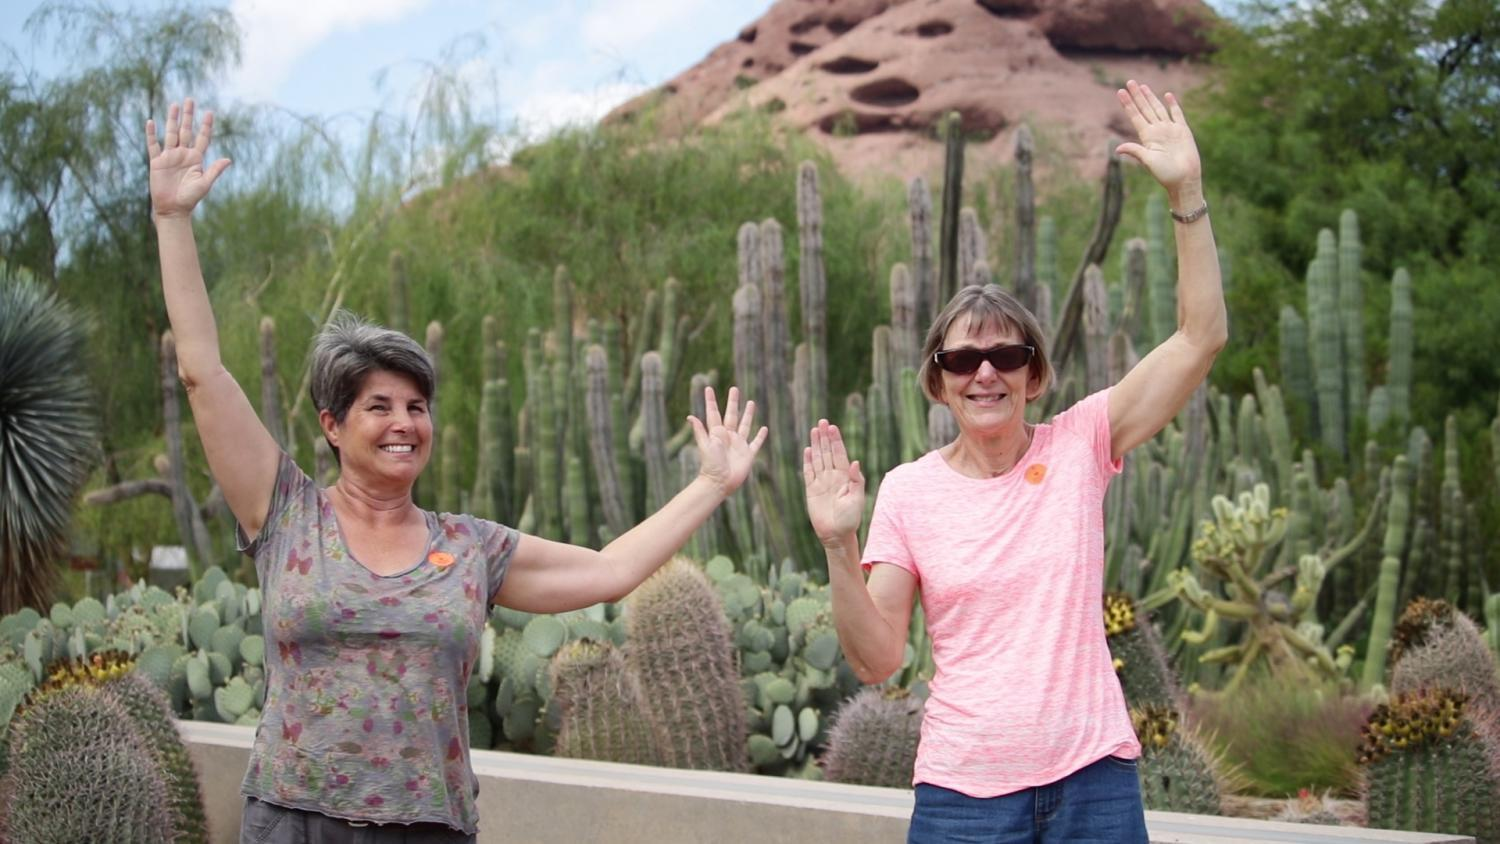 Jeannie Heiden and Patricia Lamb pose as saguaro cacti